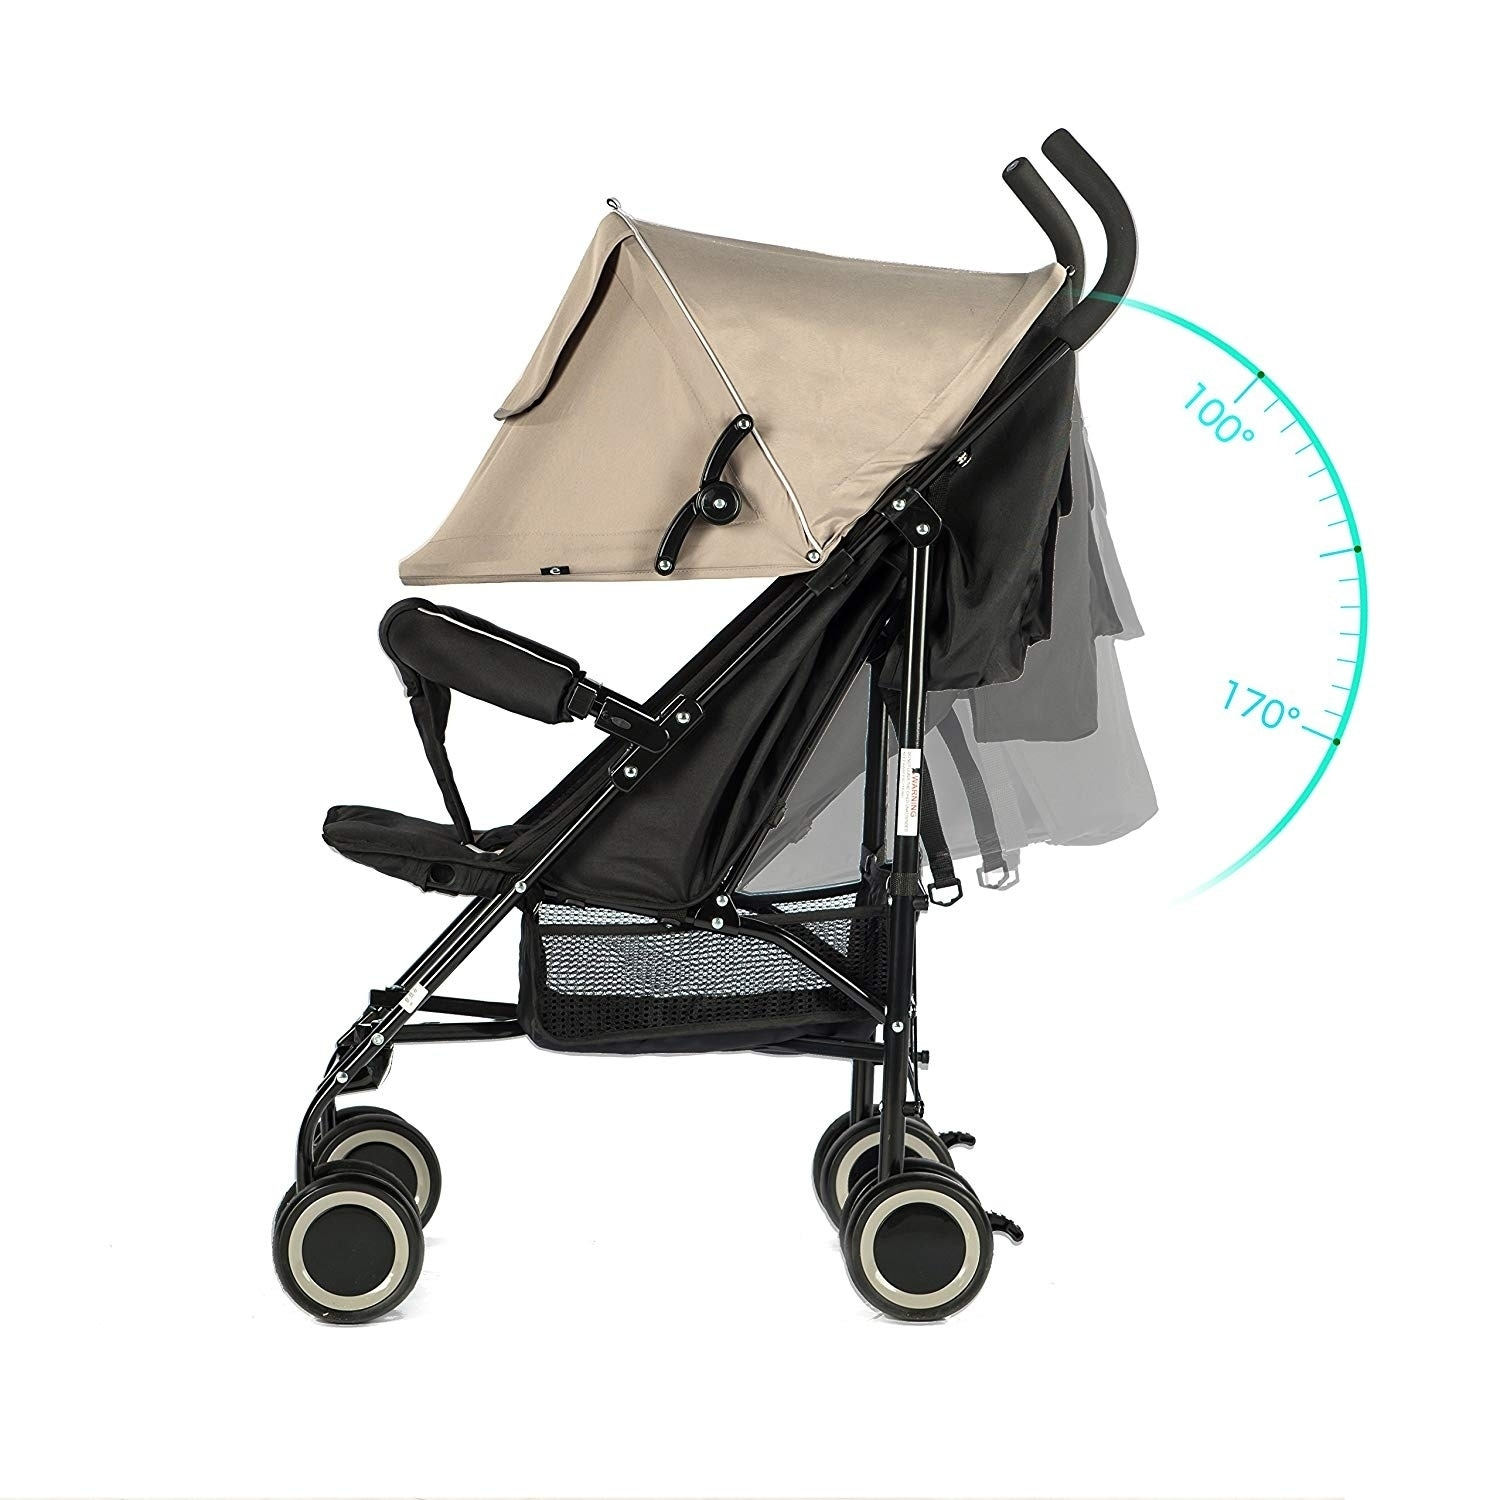 Newborn Umbrella Stroller Evezo Travis Lightweight Umbrella Stroller